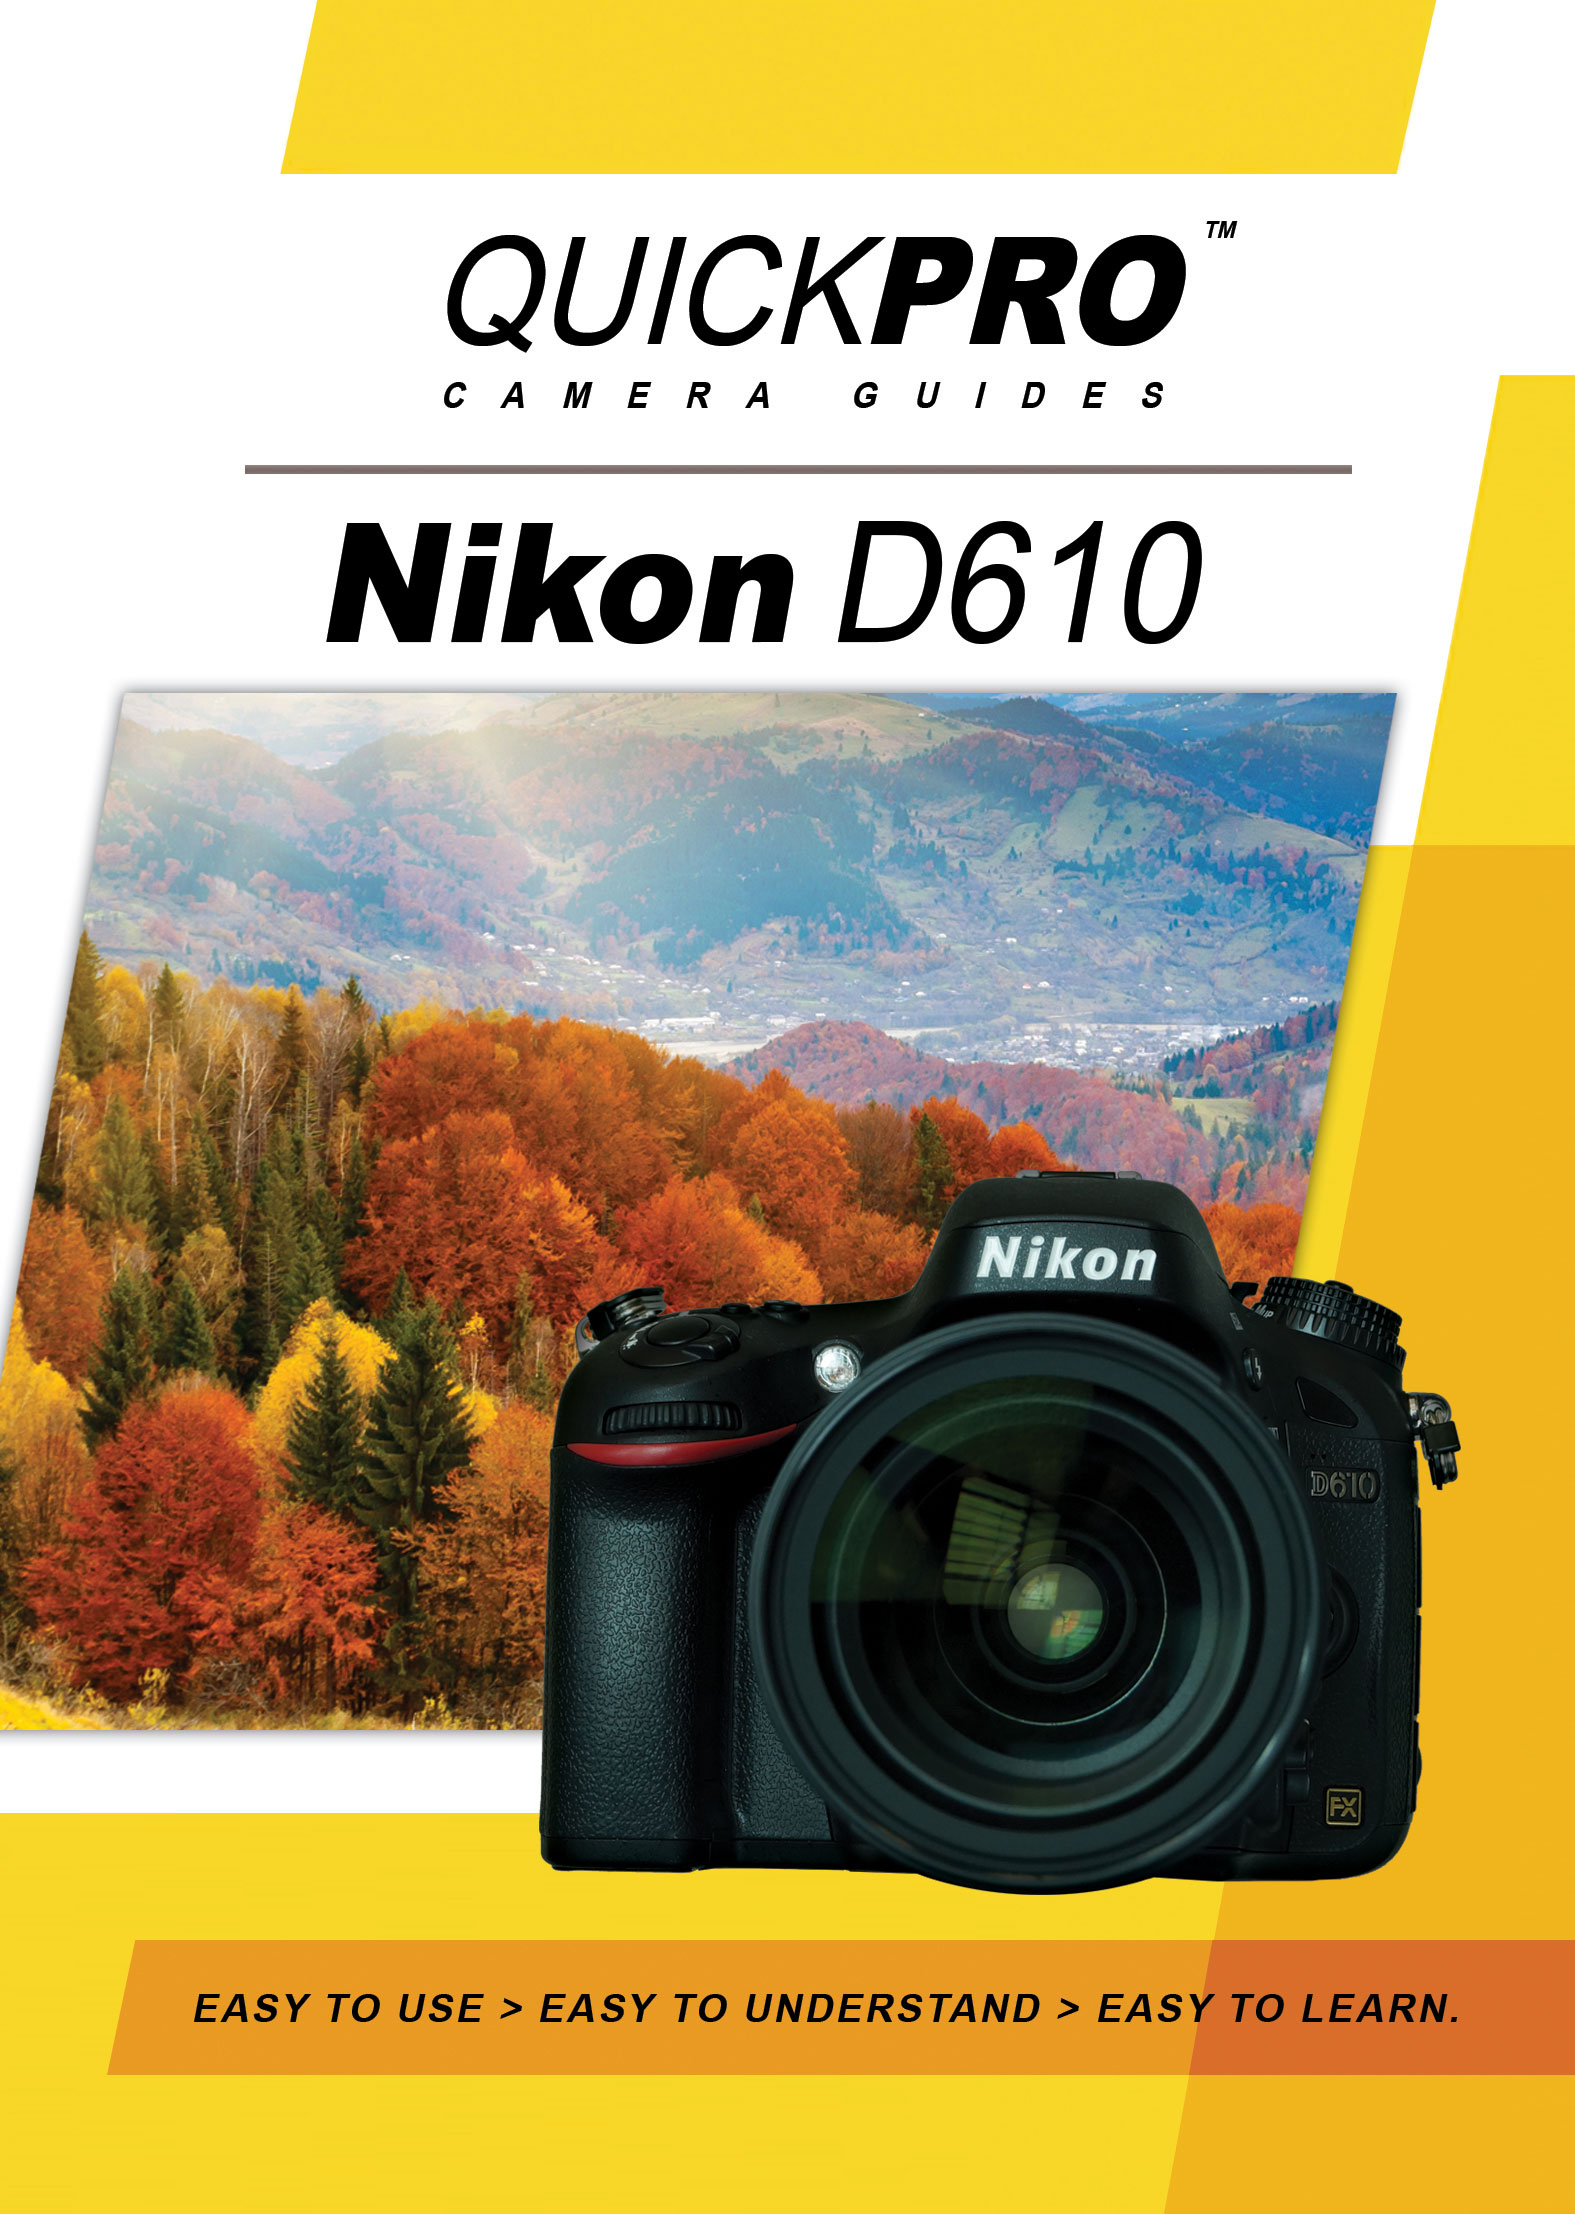 Nikon D610 Instructional Camera Guide By QuickPro